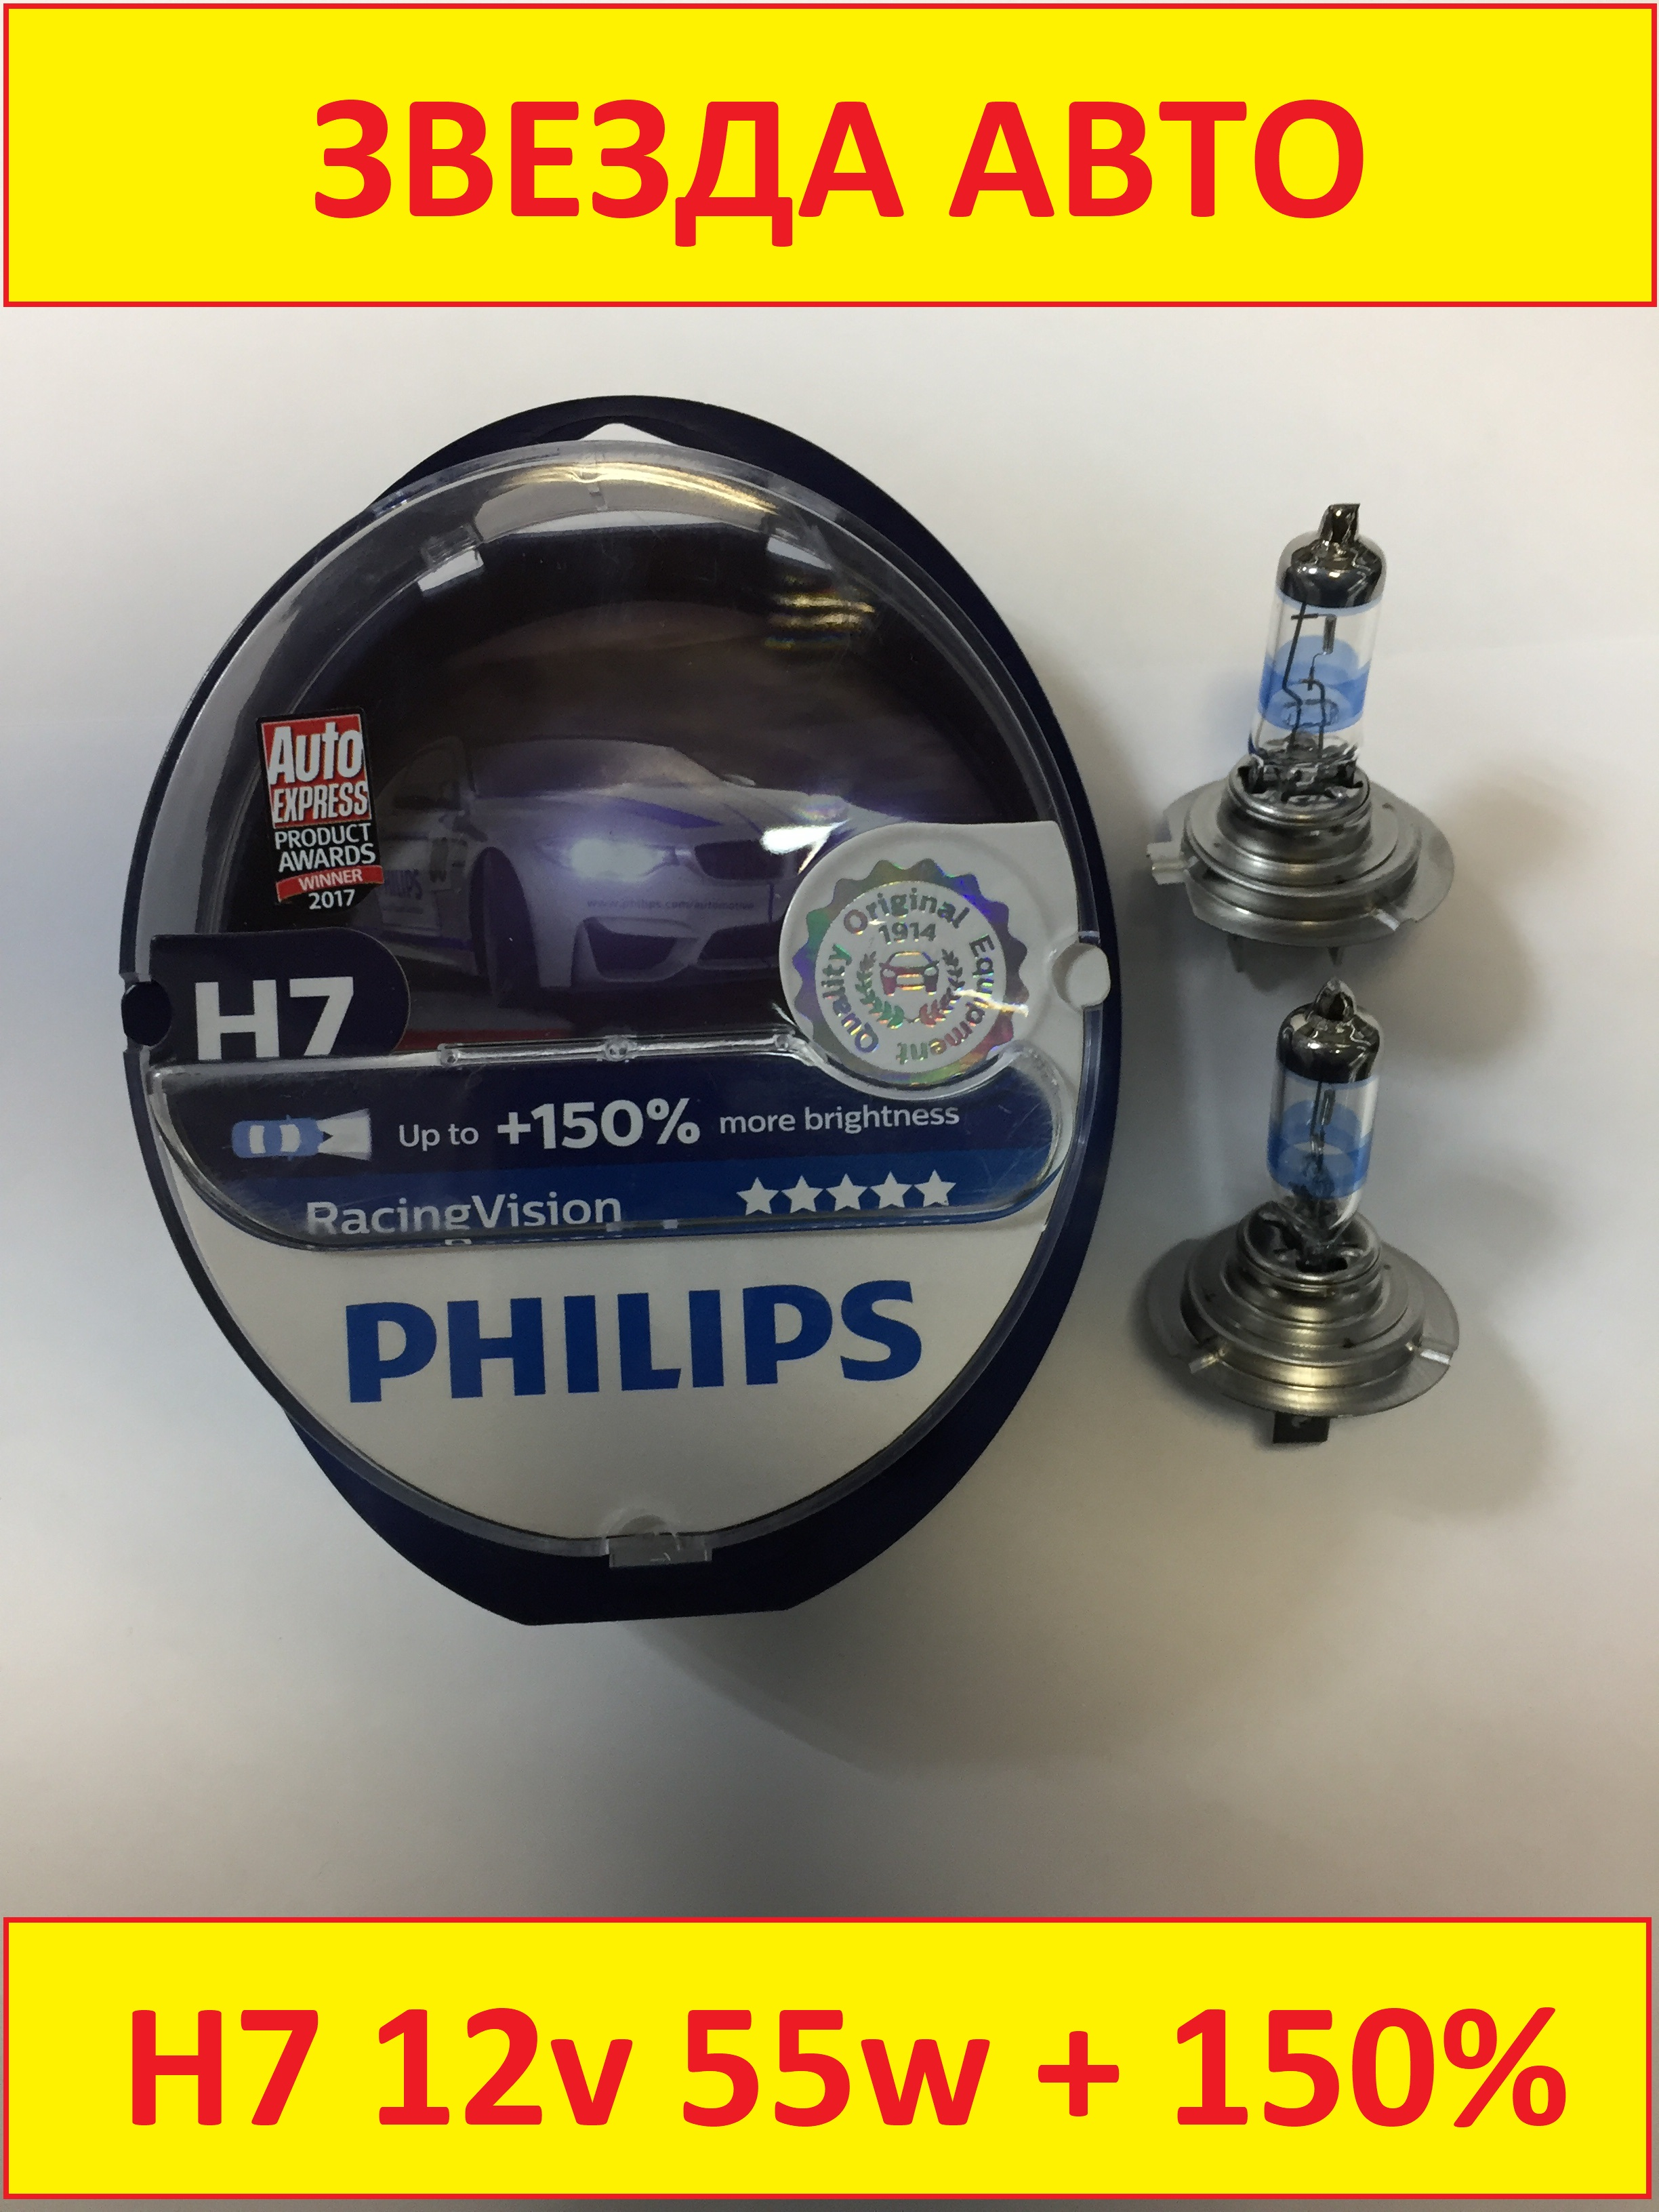 2 pcs Philips halogen bulb <font><b>H7</b></font> 12V 55W + <font><b>150</b></font>% Philips RacingVision 12972RVS2 2pcs for headlights image